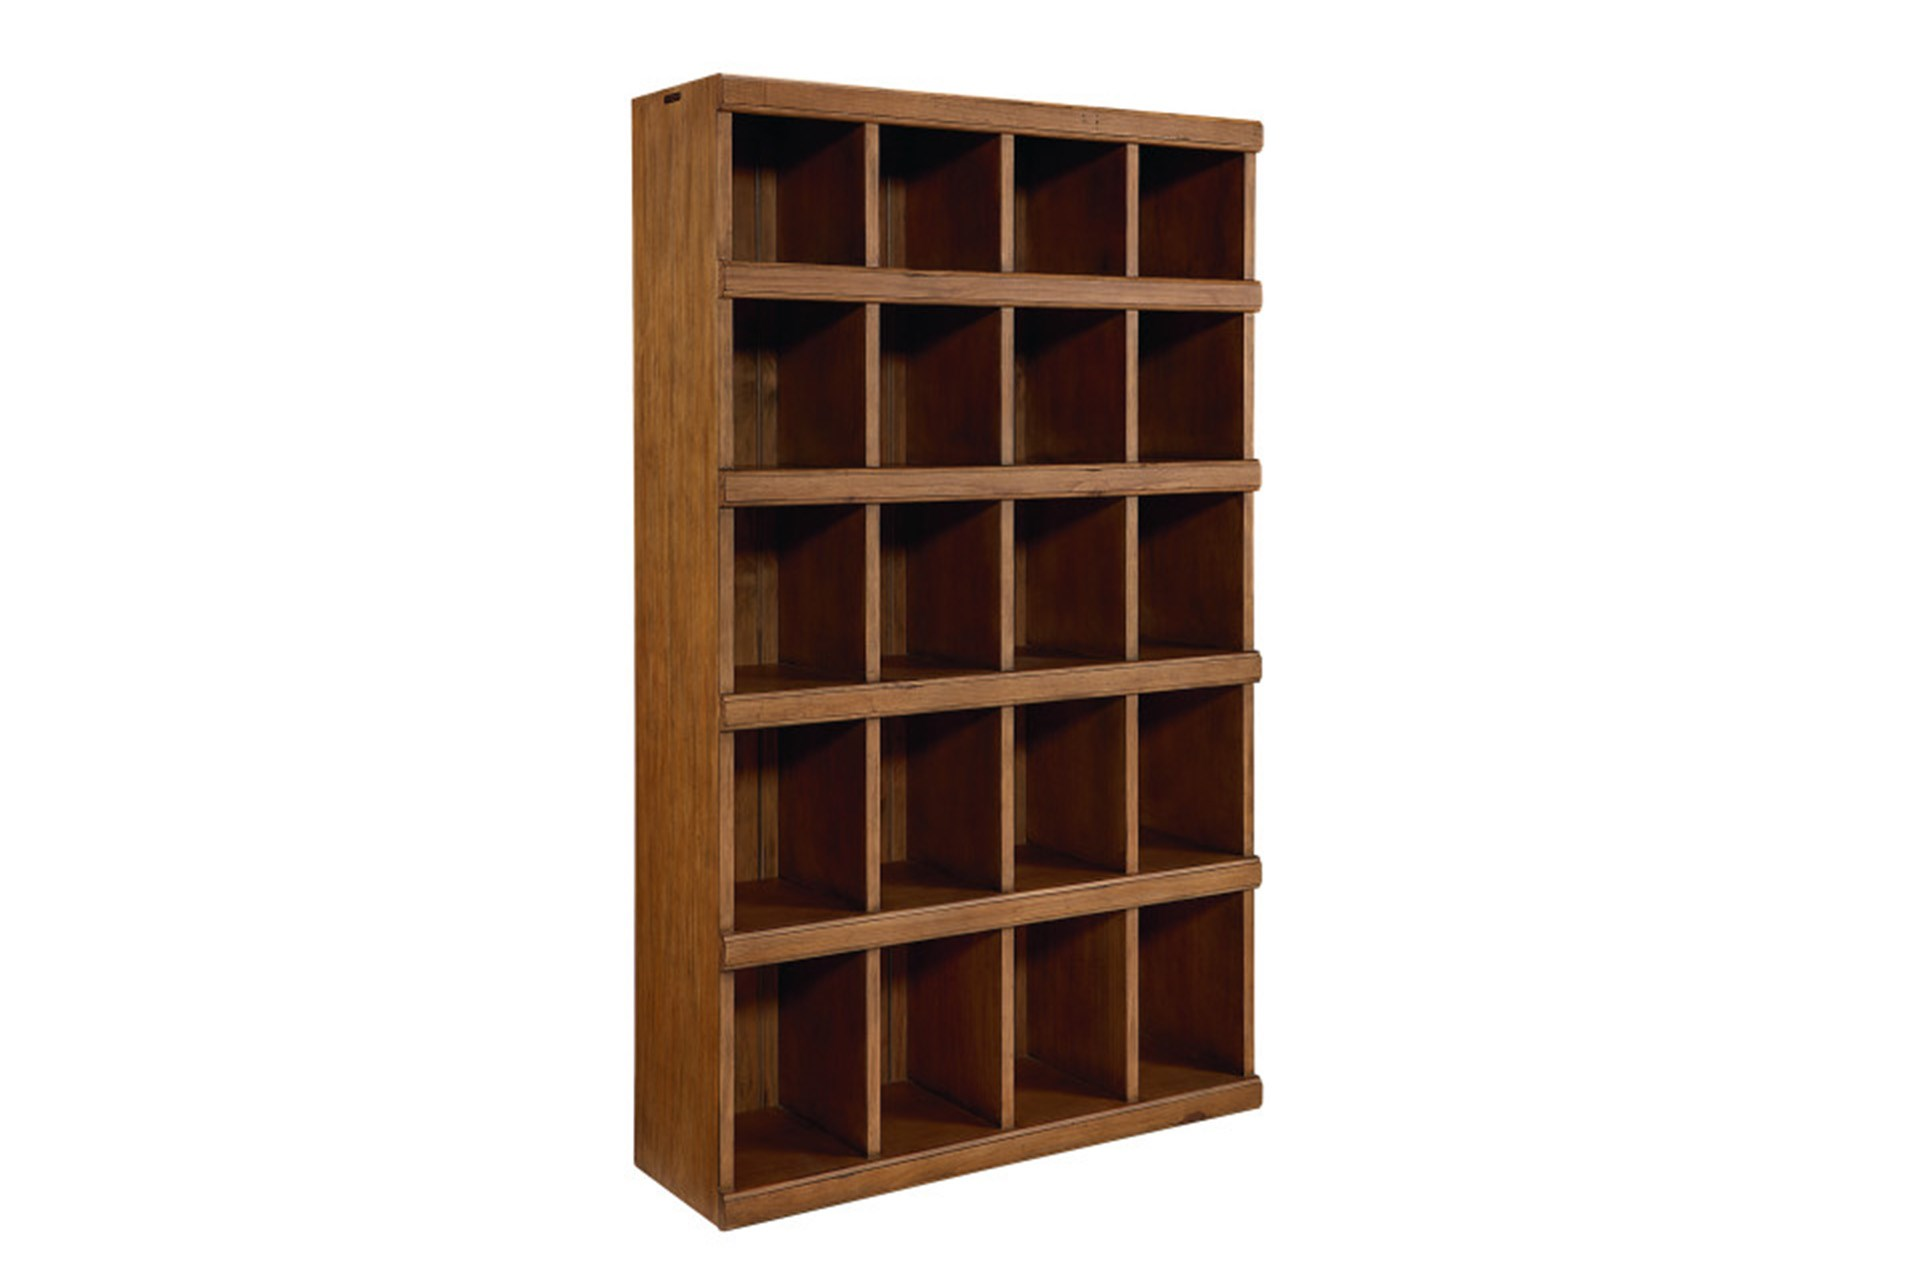 design as home bookcases seat bench for children window bookcase tickle